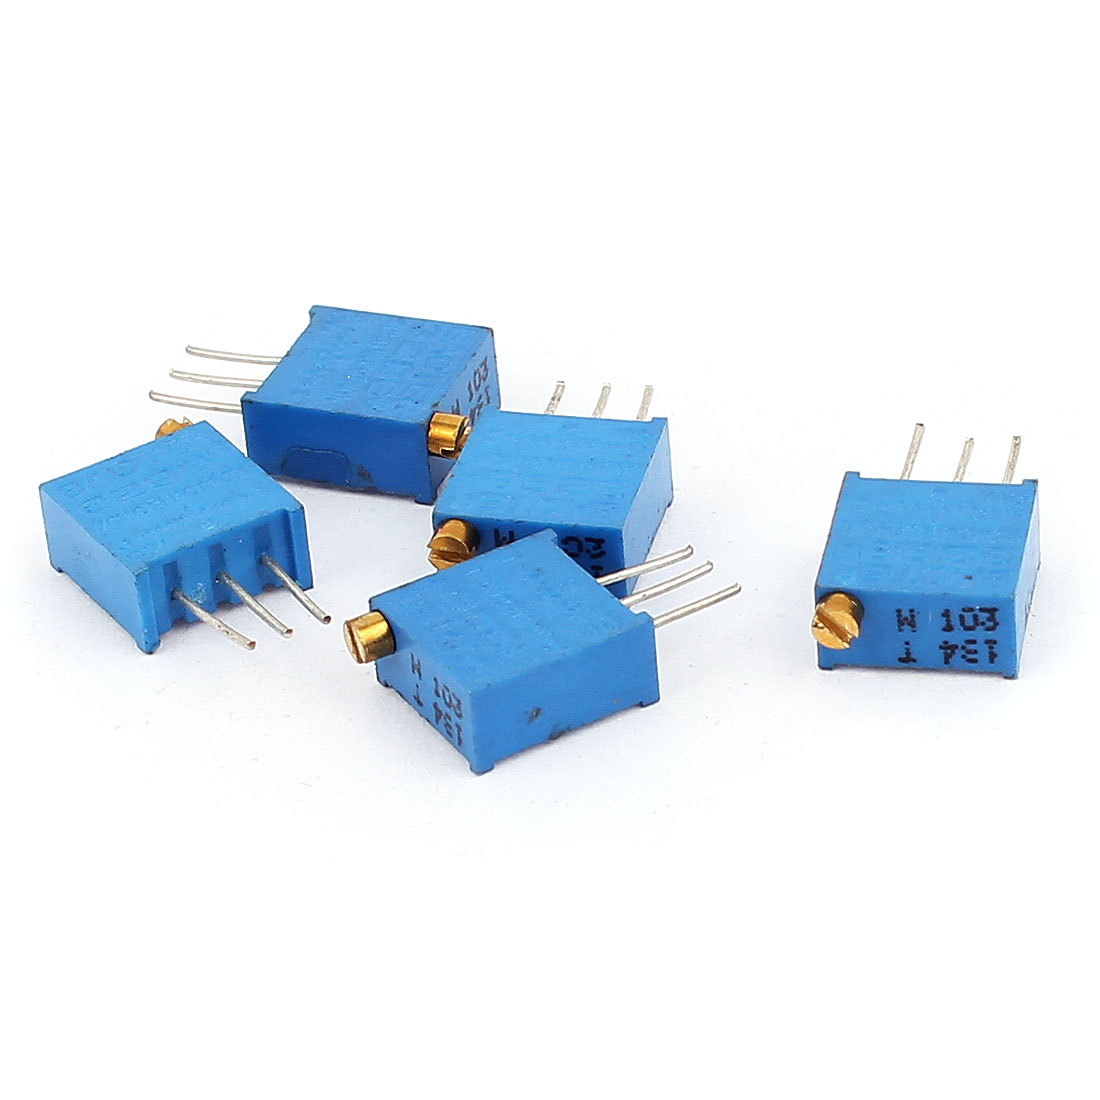 5 Pcs 3296W 10K ohm Variable Resistor Adjustable Resistance for Multiturn Potentiometer